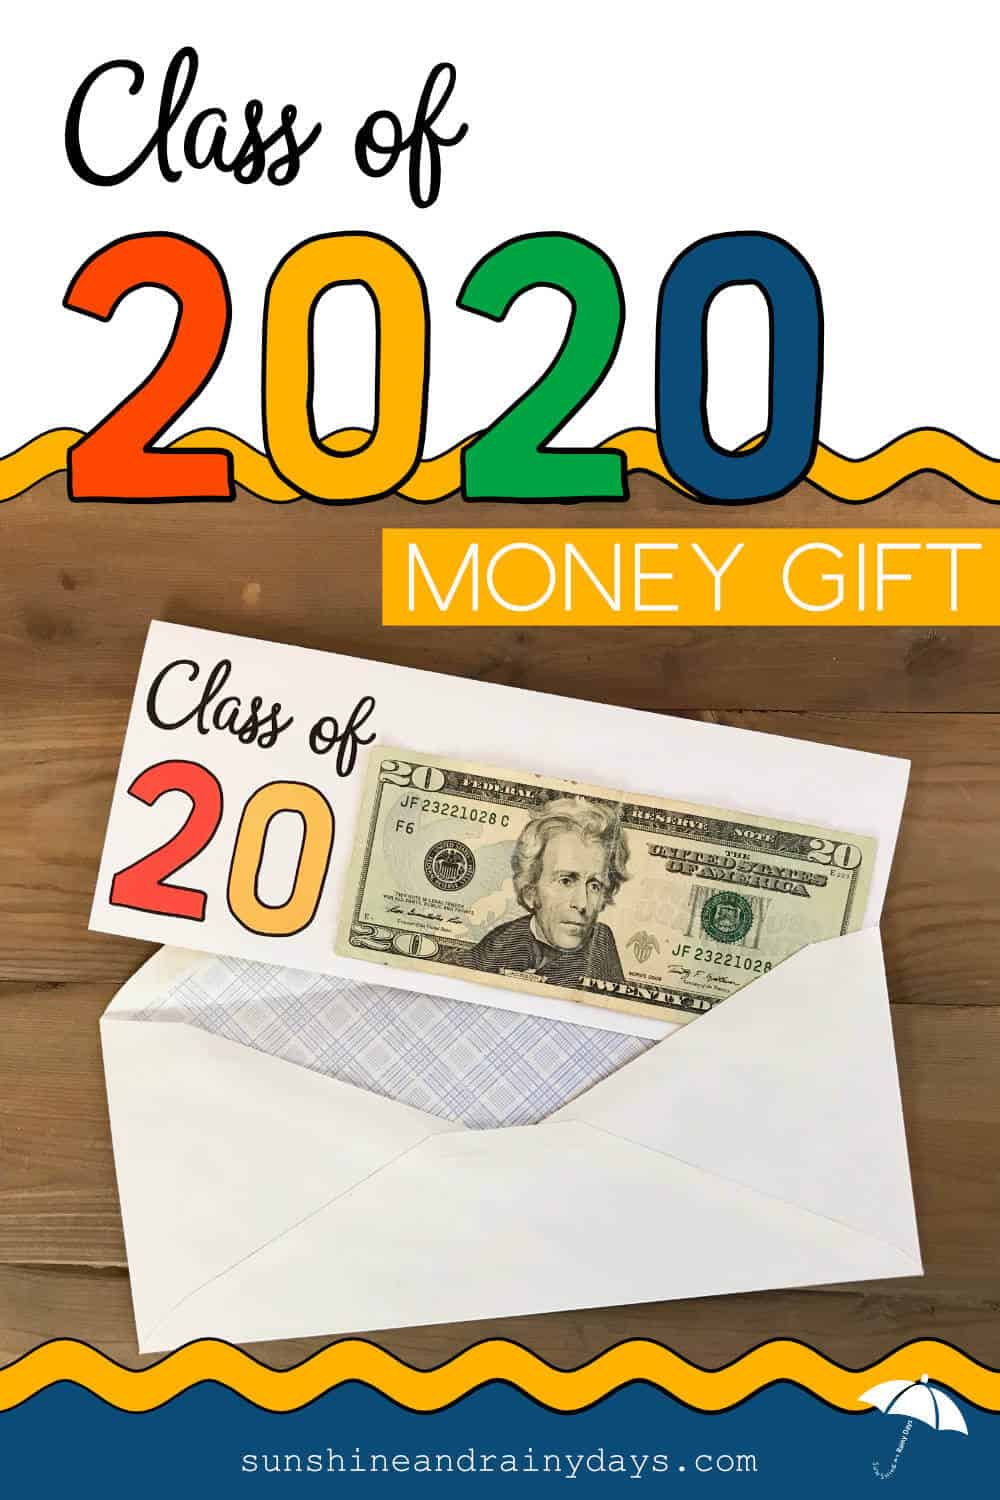 Printable Card For 2020 Graduates with Class Of 20 printed and room for a $20 bill.